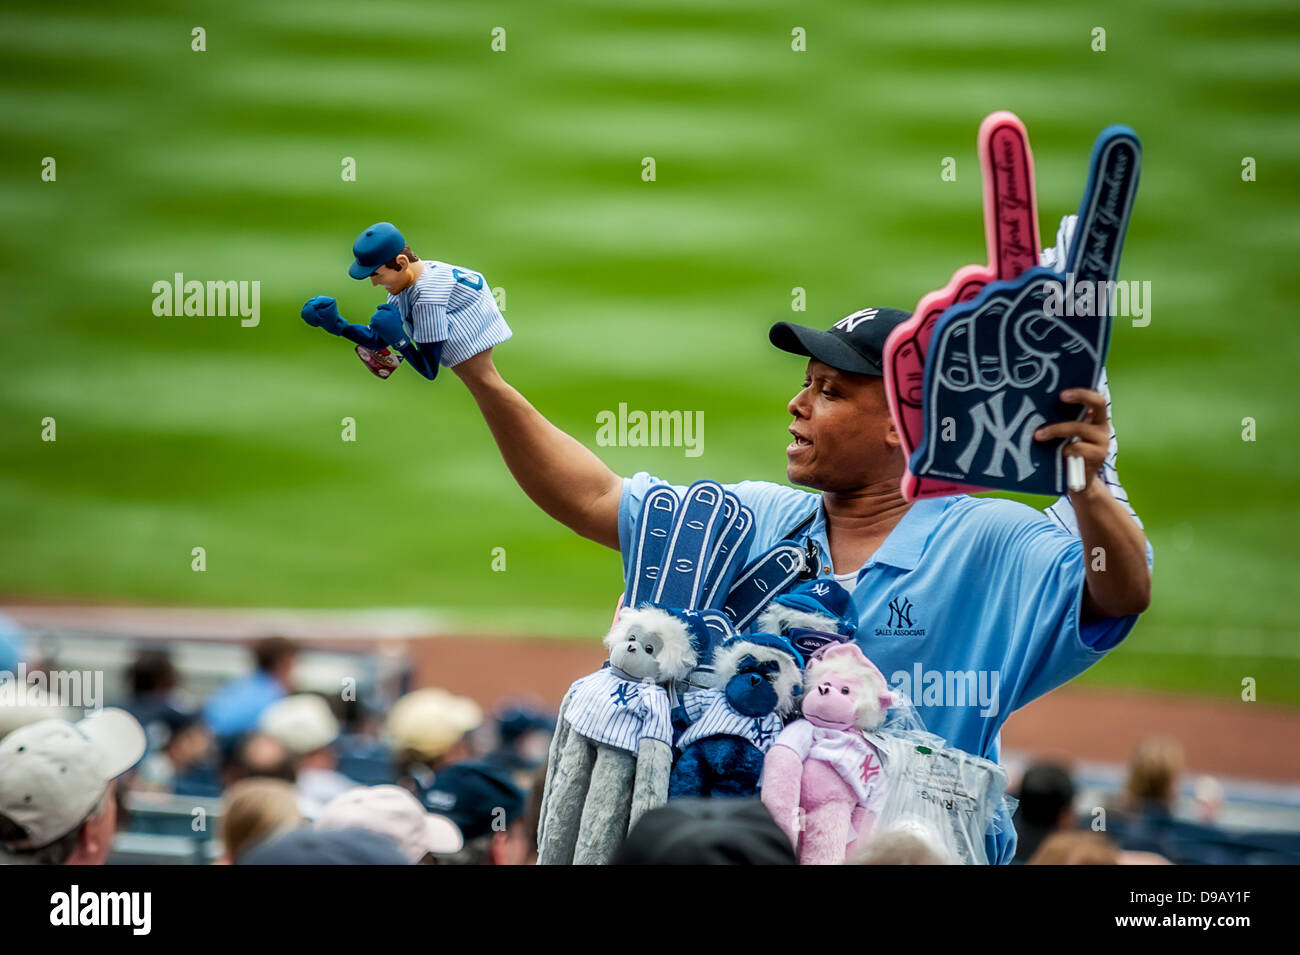 A souvenir and merchandise seller at Yankee Stadium. - Stock Image